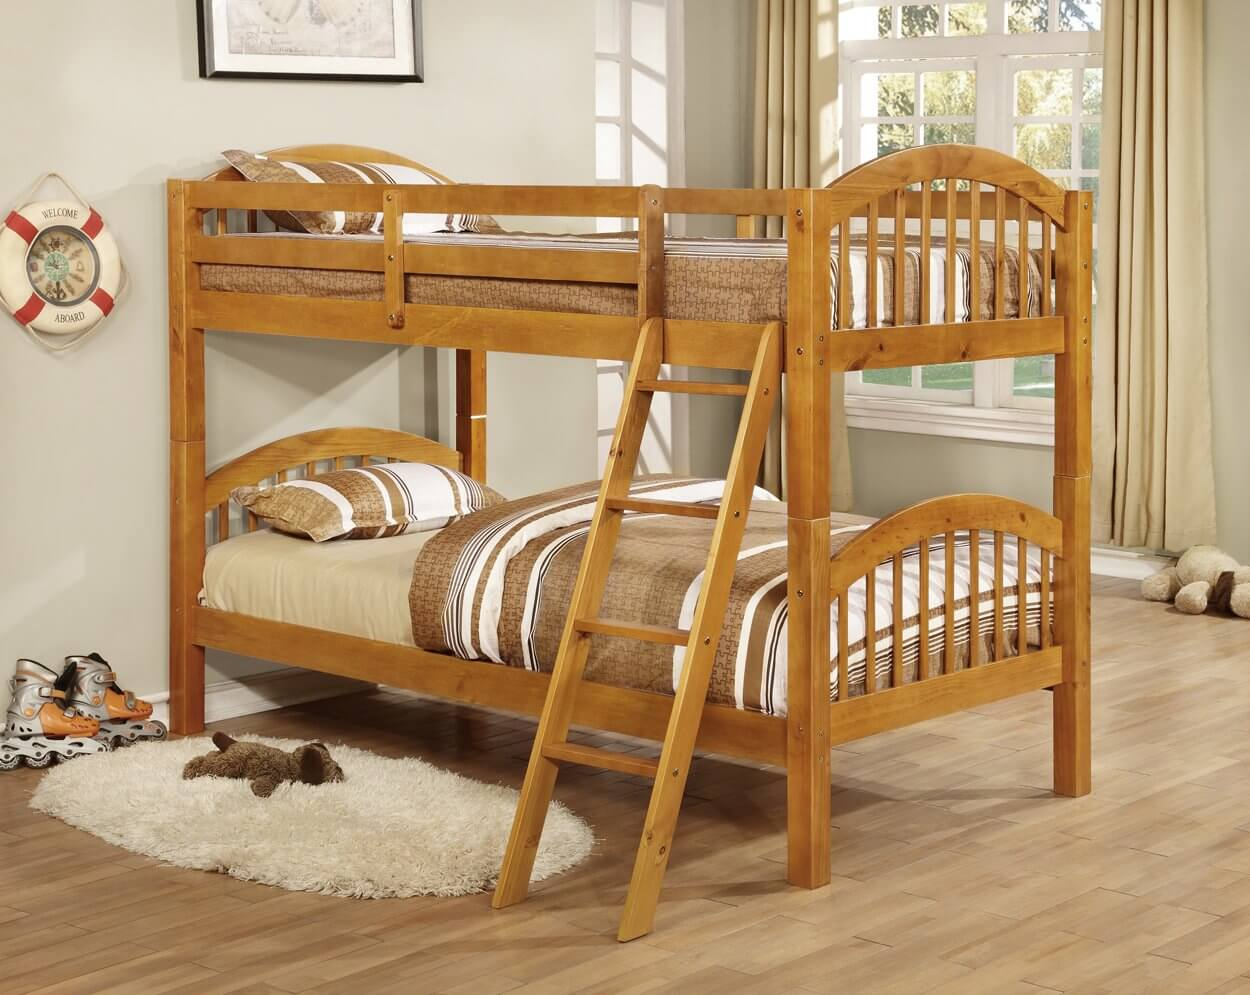 Top 10 Best Bunk Beds Review-5